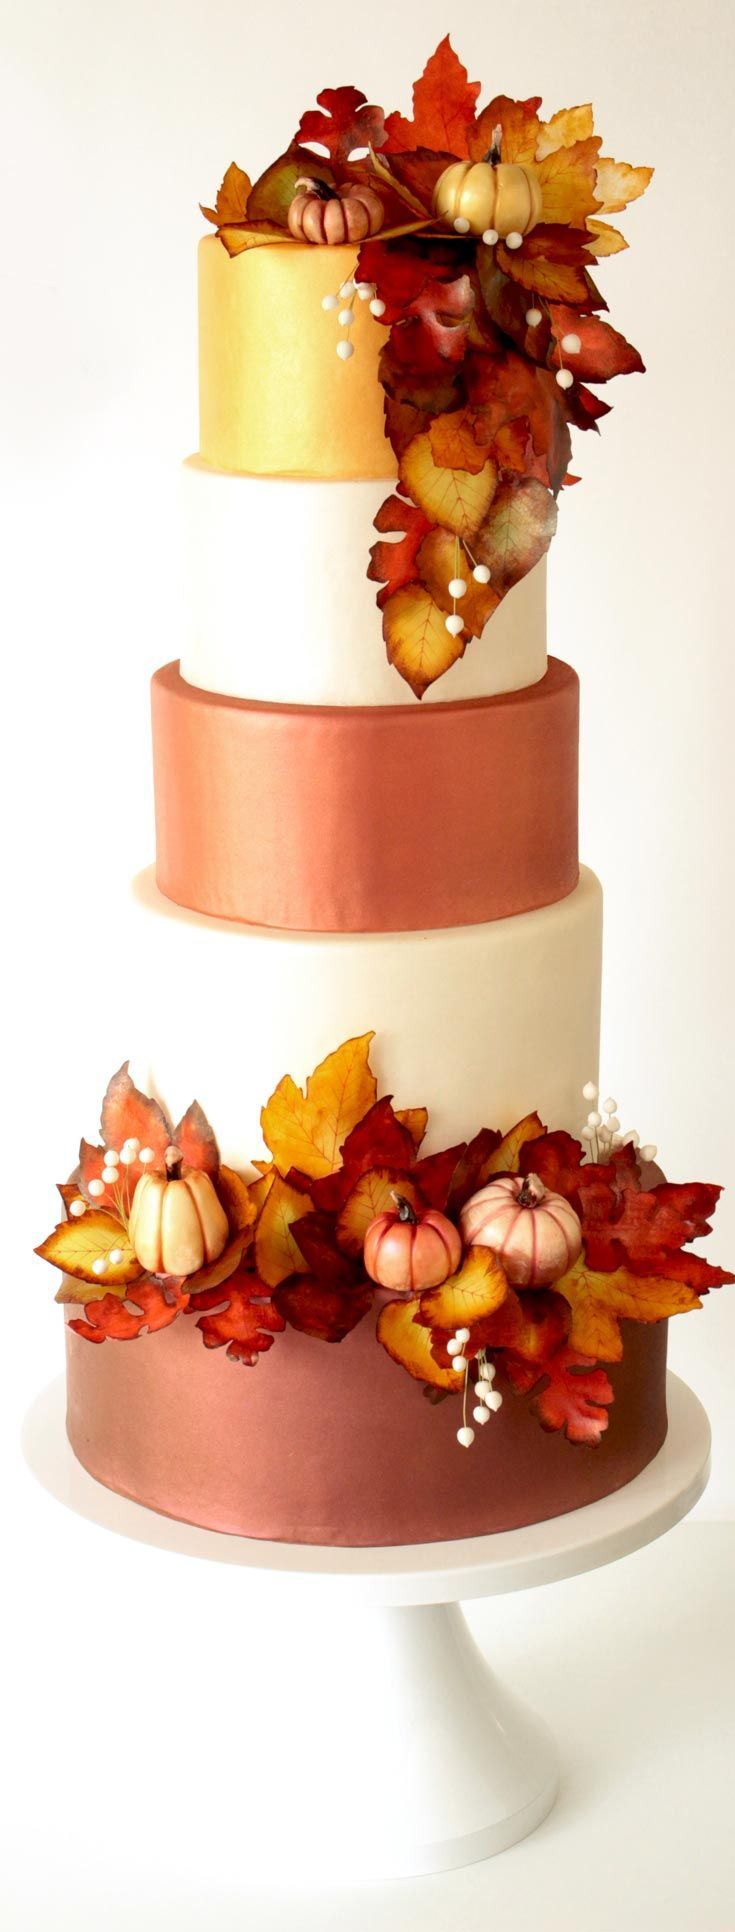 learn how to make wedding cakes learn to make this fall wedding cake and decor 16778